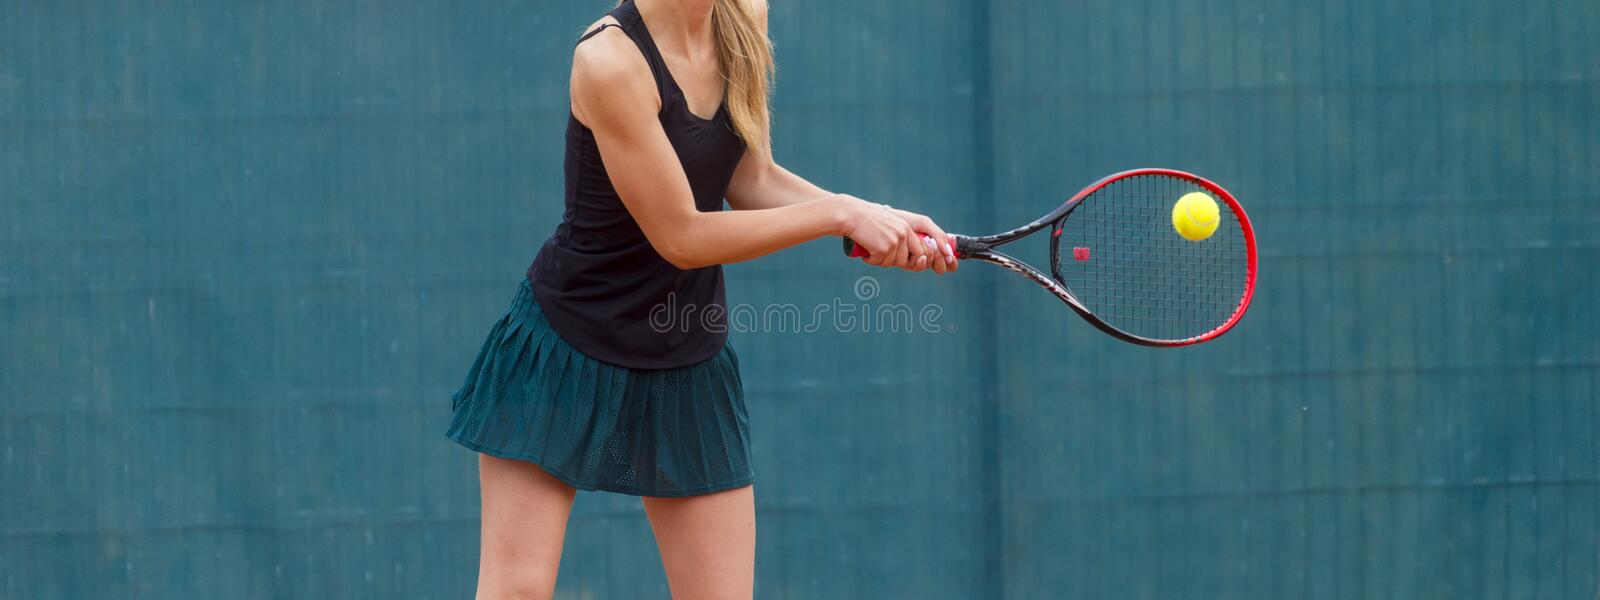 Midsection Of Woman Playing Tennis In Court royalty free stock photos